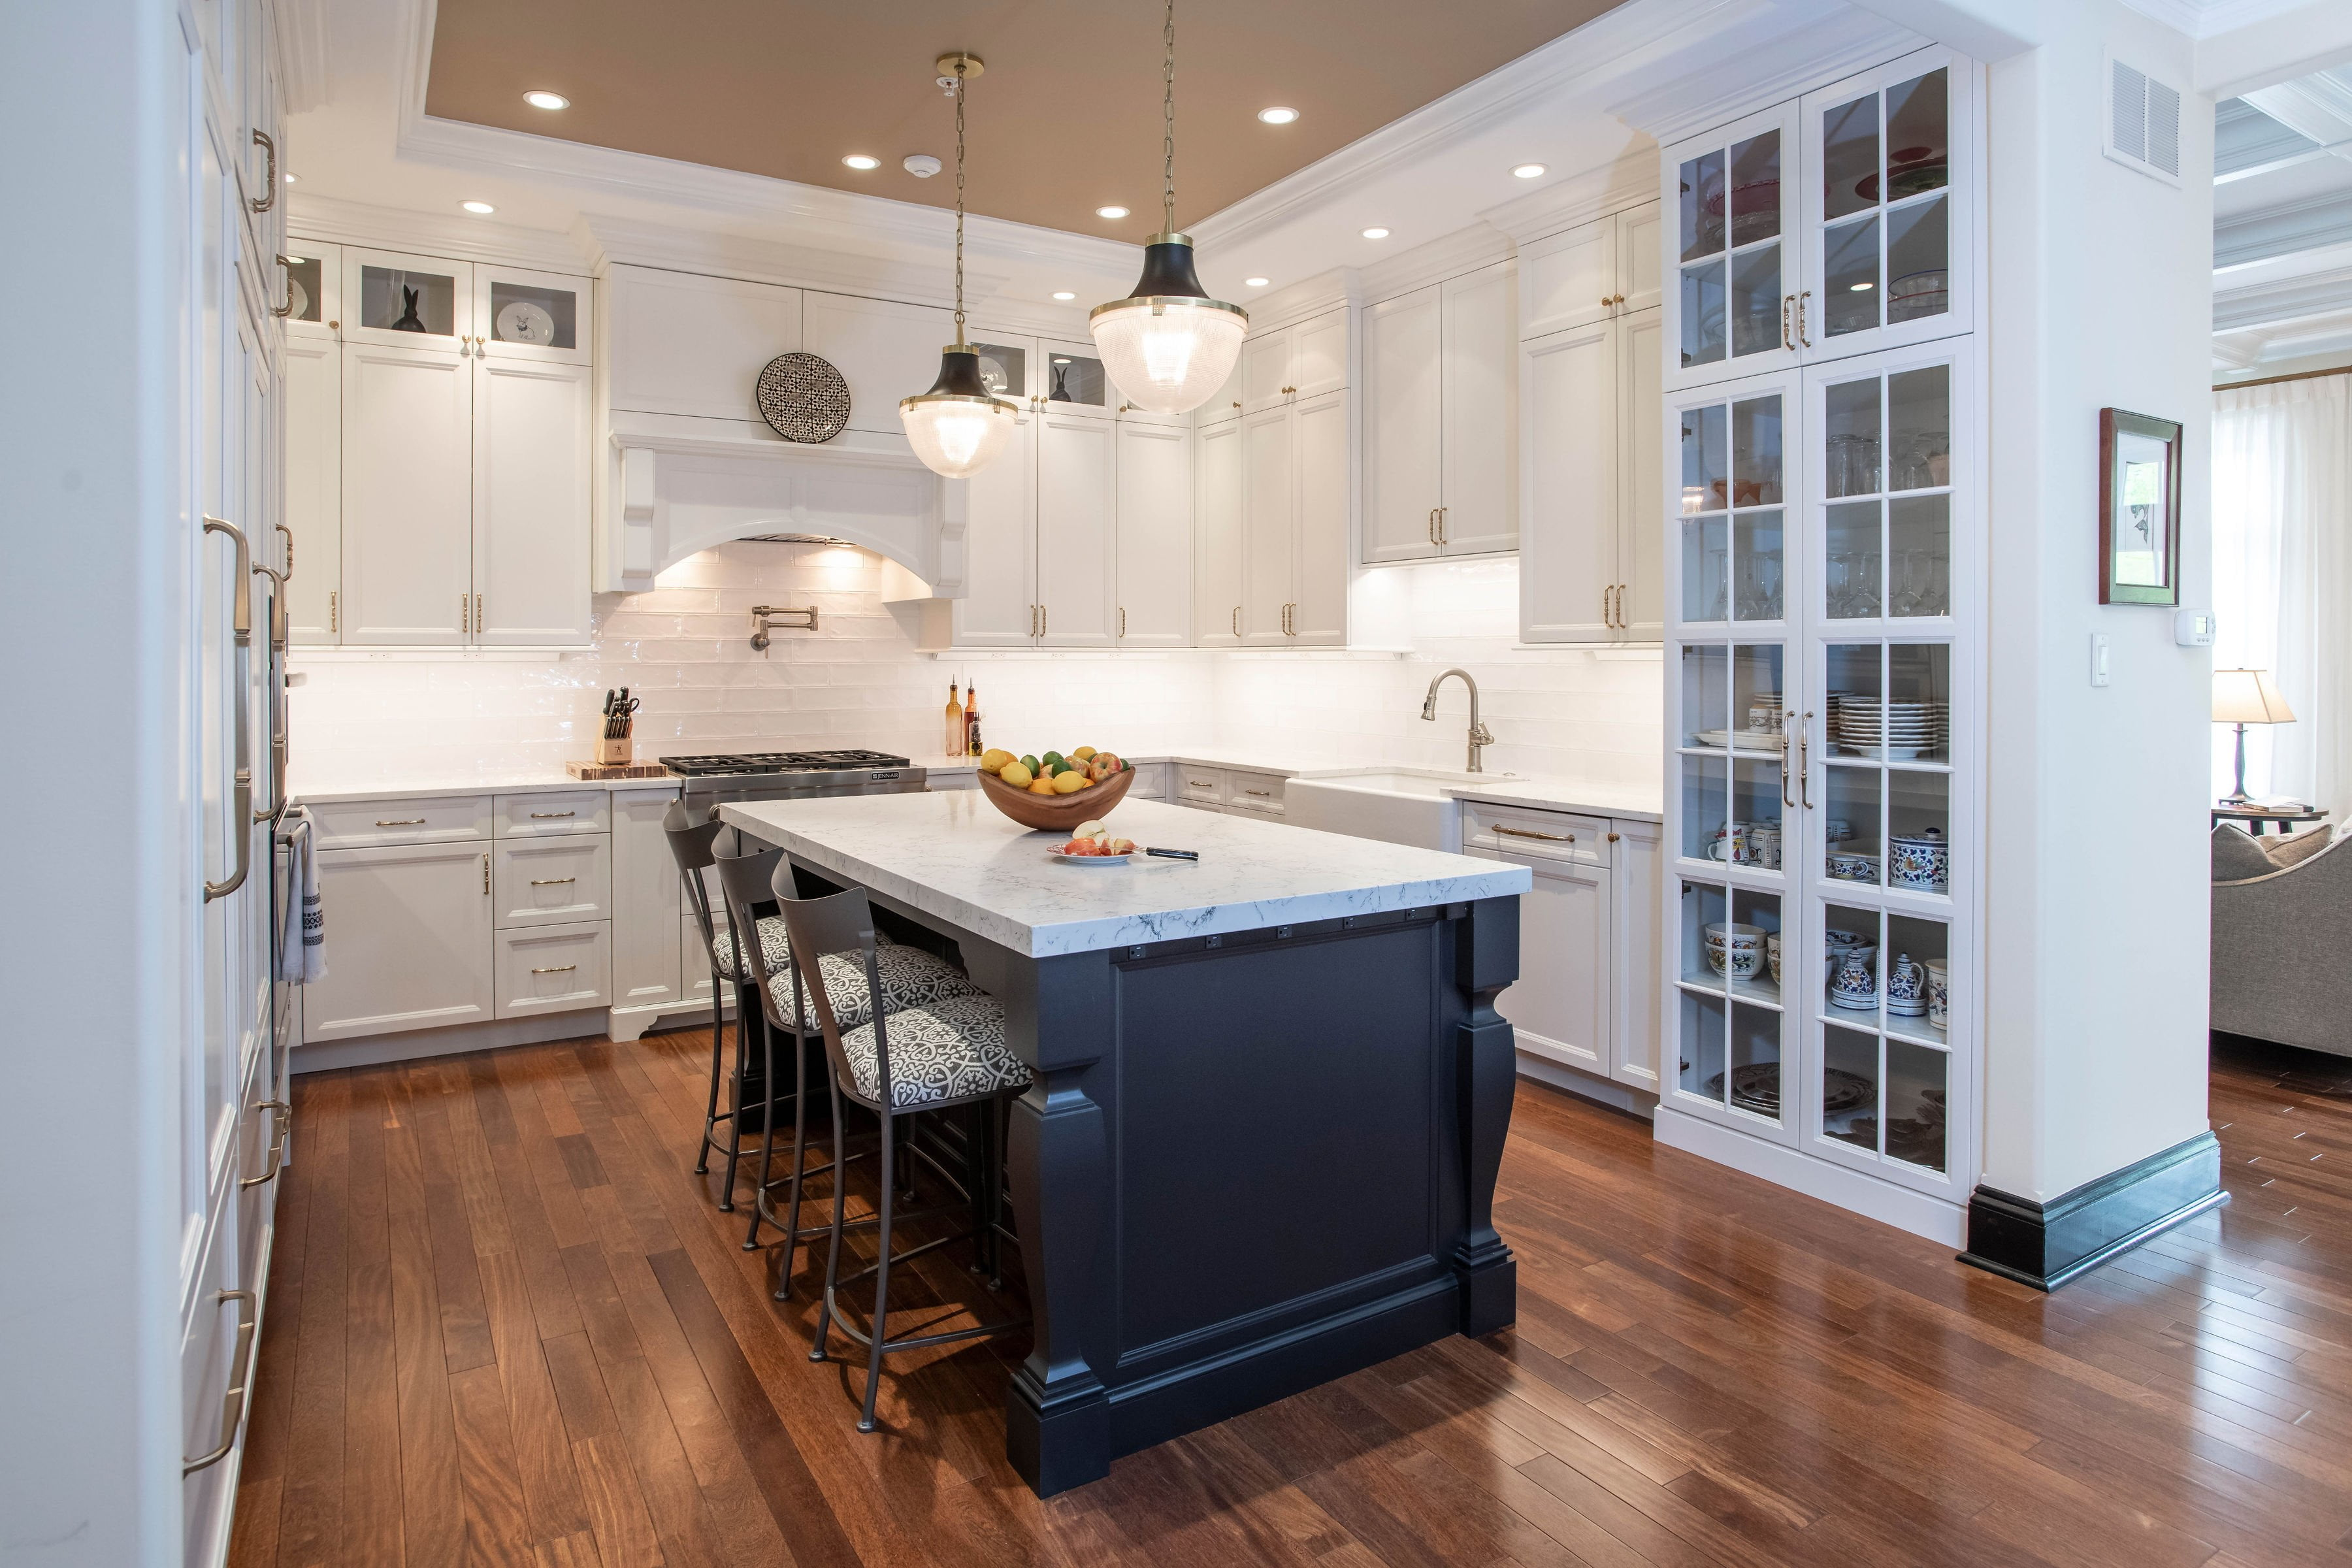 Stunning luxury kitchen remodel in the Hingtgen project completed by the team at Sunnyfields Cabinetry.